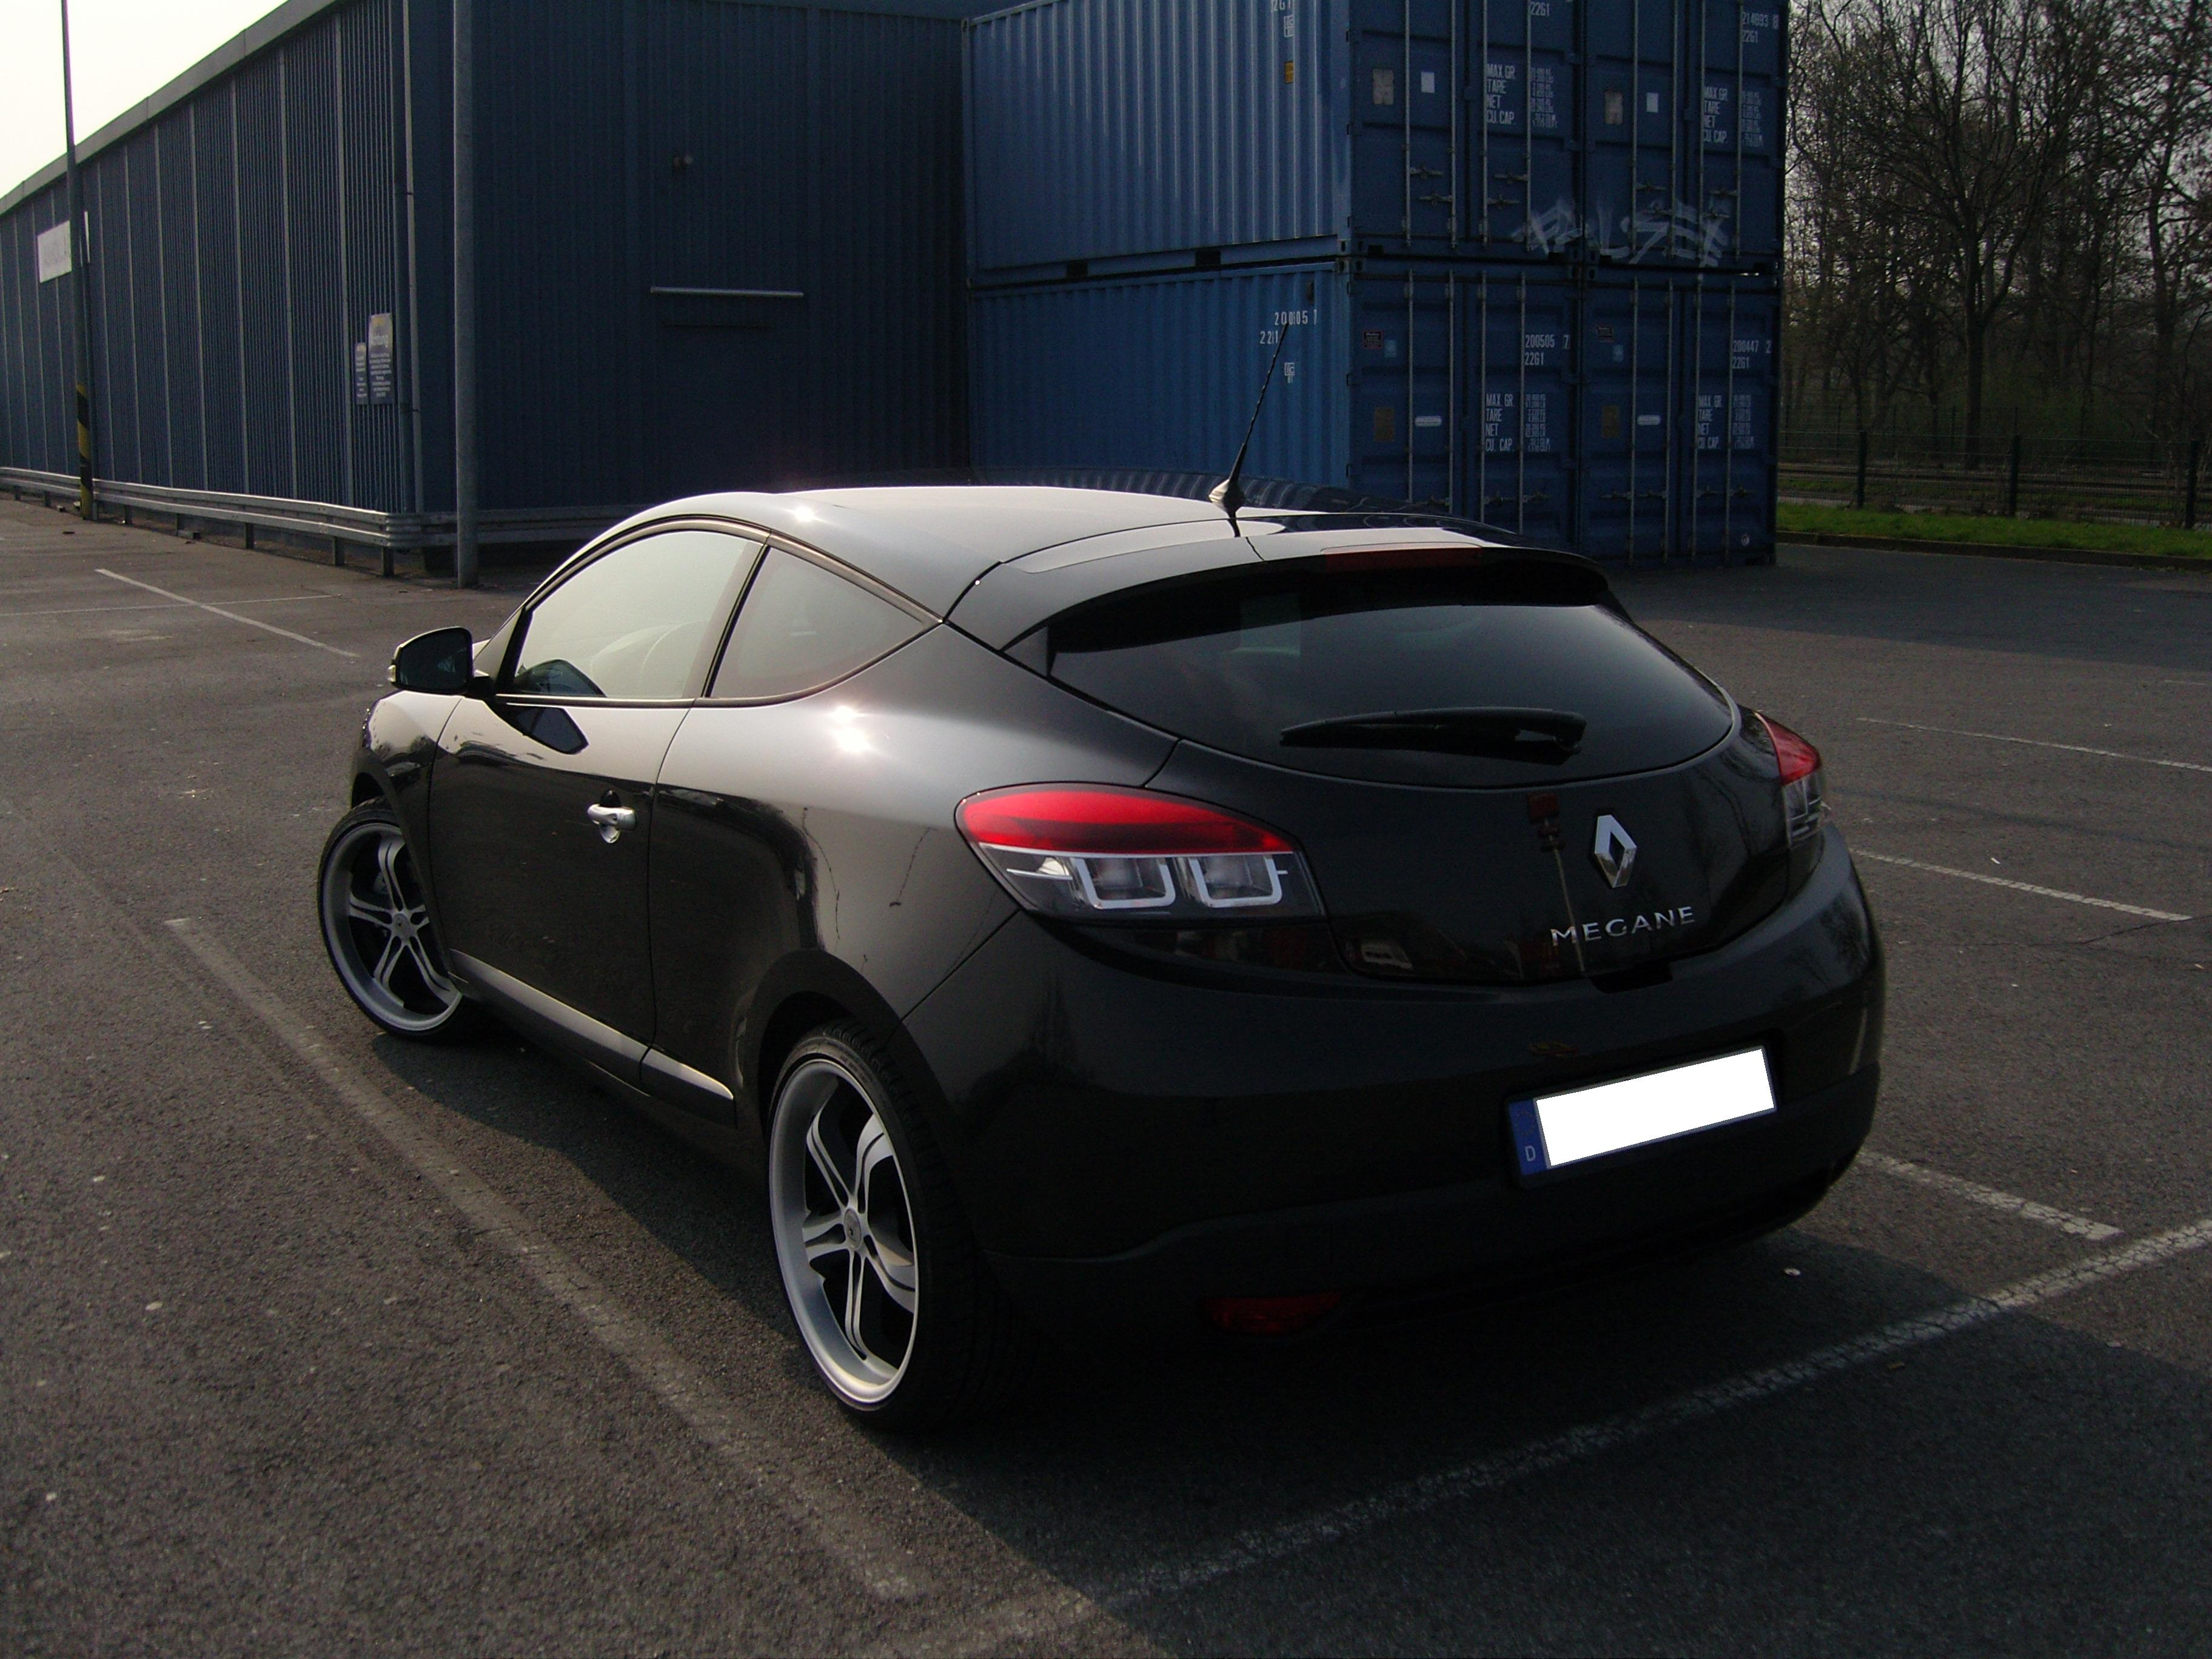 file renault megane coupe wikimedia commons. Black Bedroom Furniture Sets. Home Design Ideas